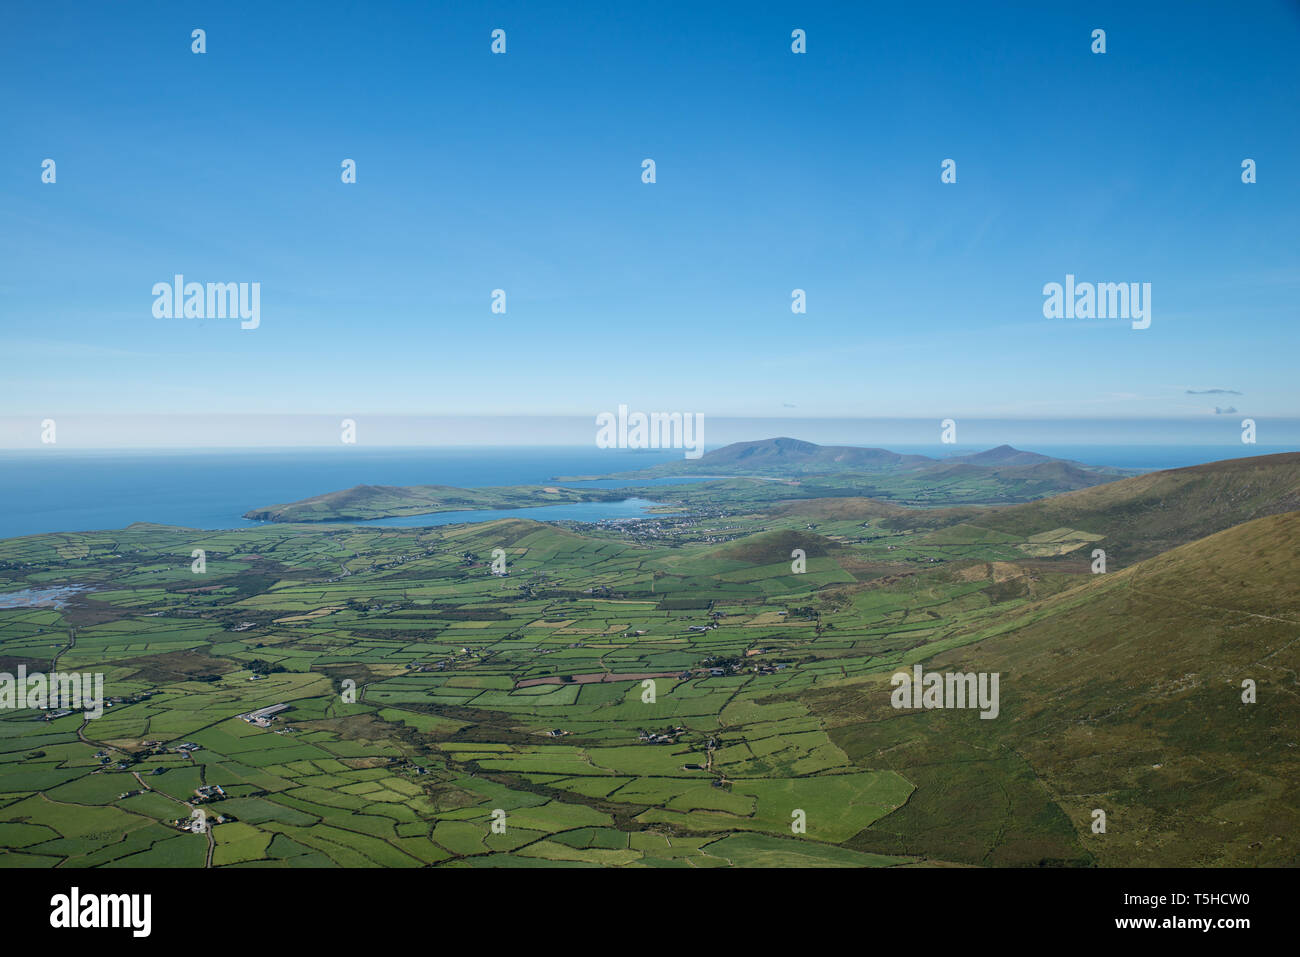 Dingle bay and the village of Dingle (2,000 inhabitants) on the Dingle peninsula in West Kerry, Republic of Ireland. - Stock Image